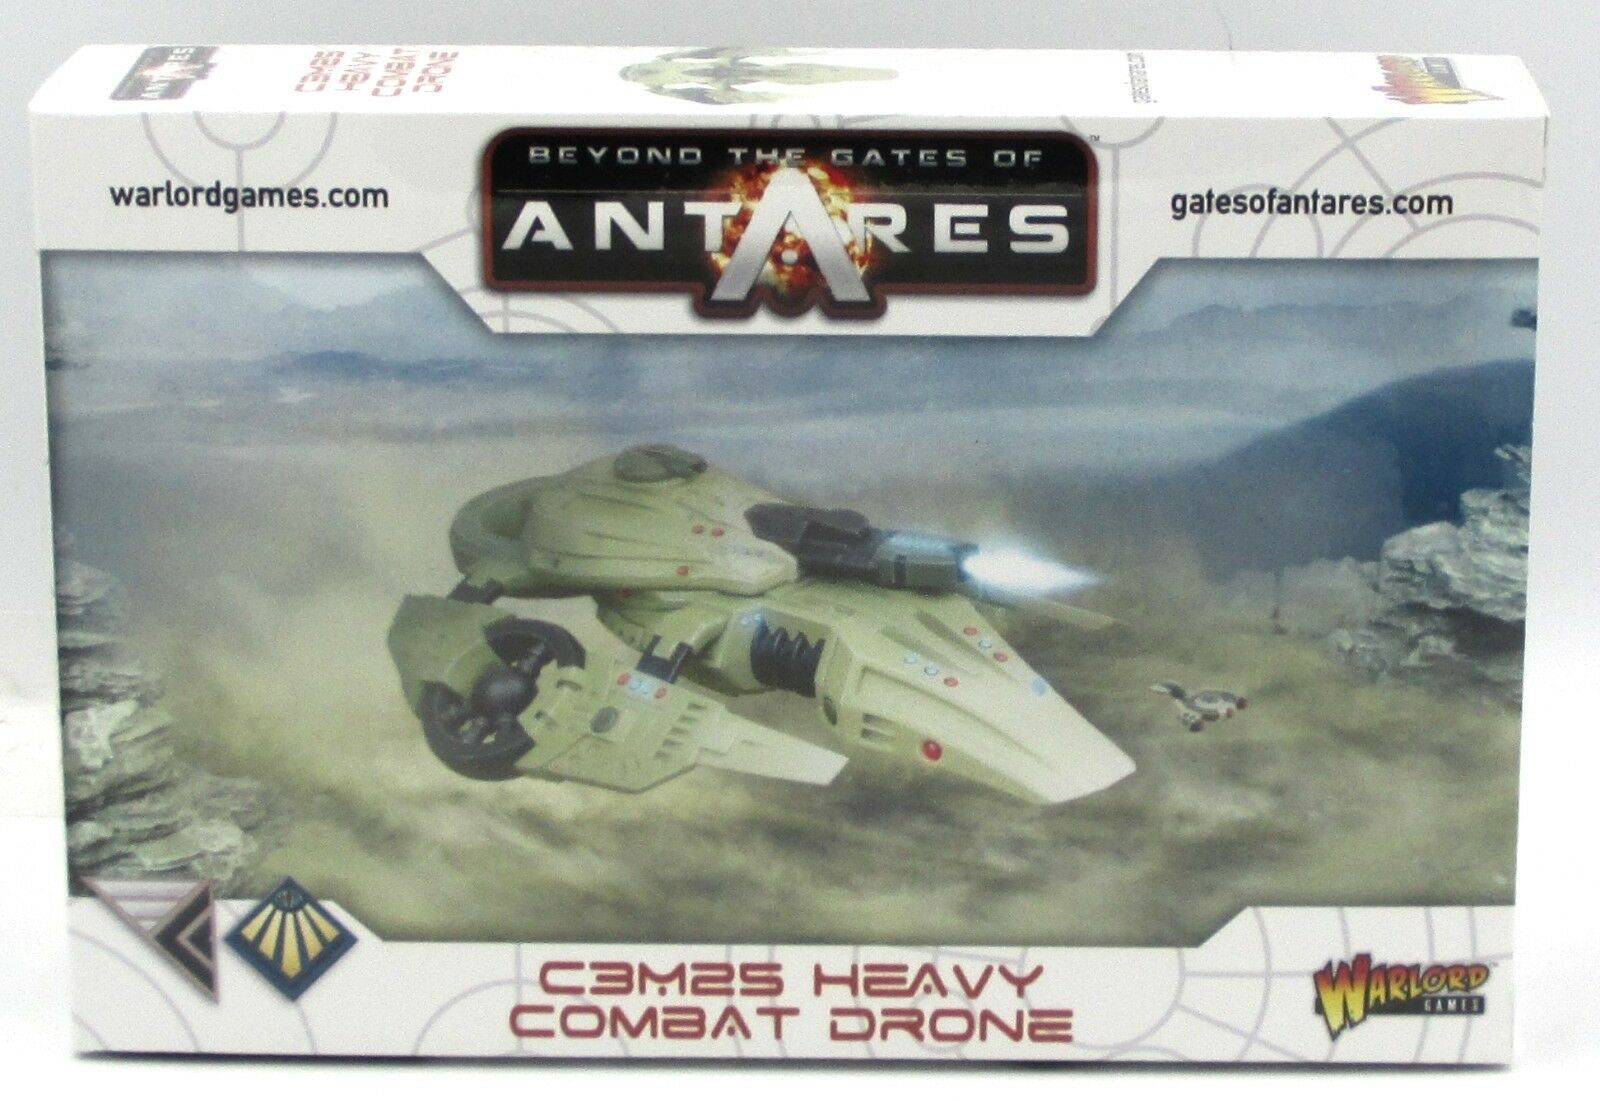 Beyond the Gates of Antares 502413004 C3M35 Heavy Combat Drone Concord C3 NIB